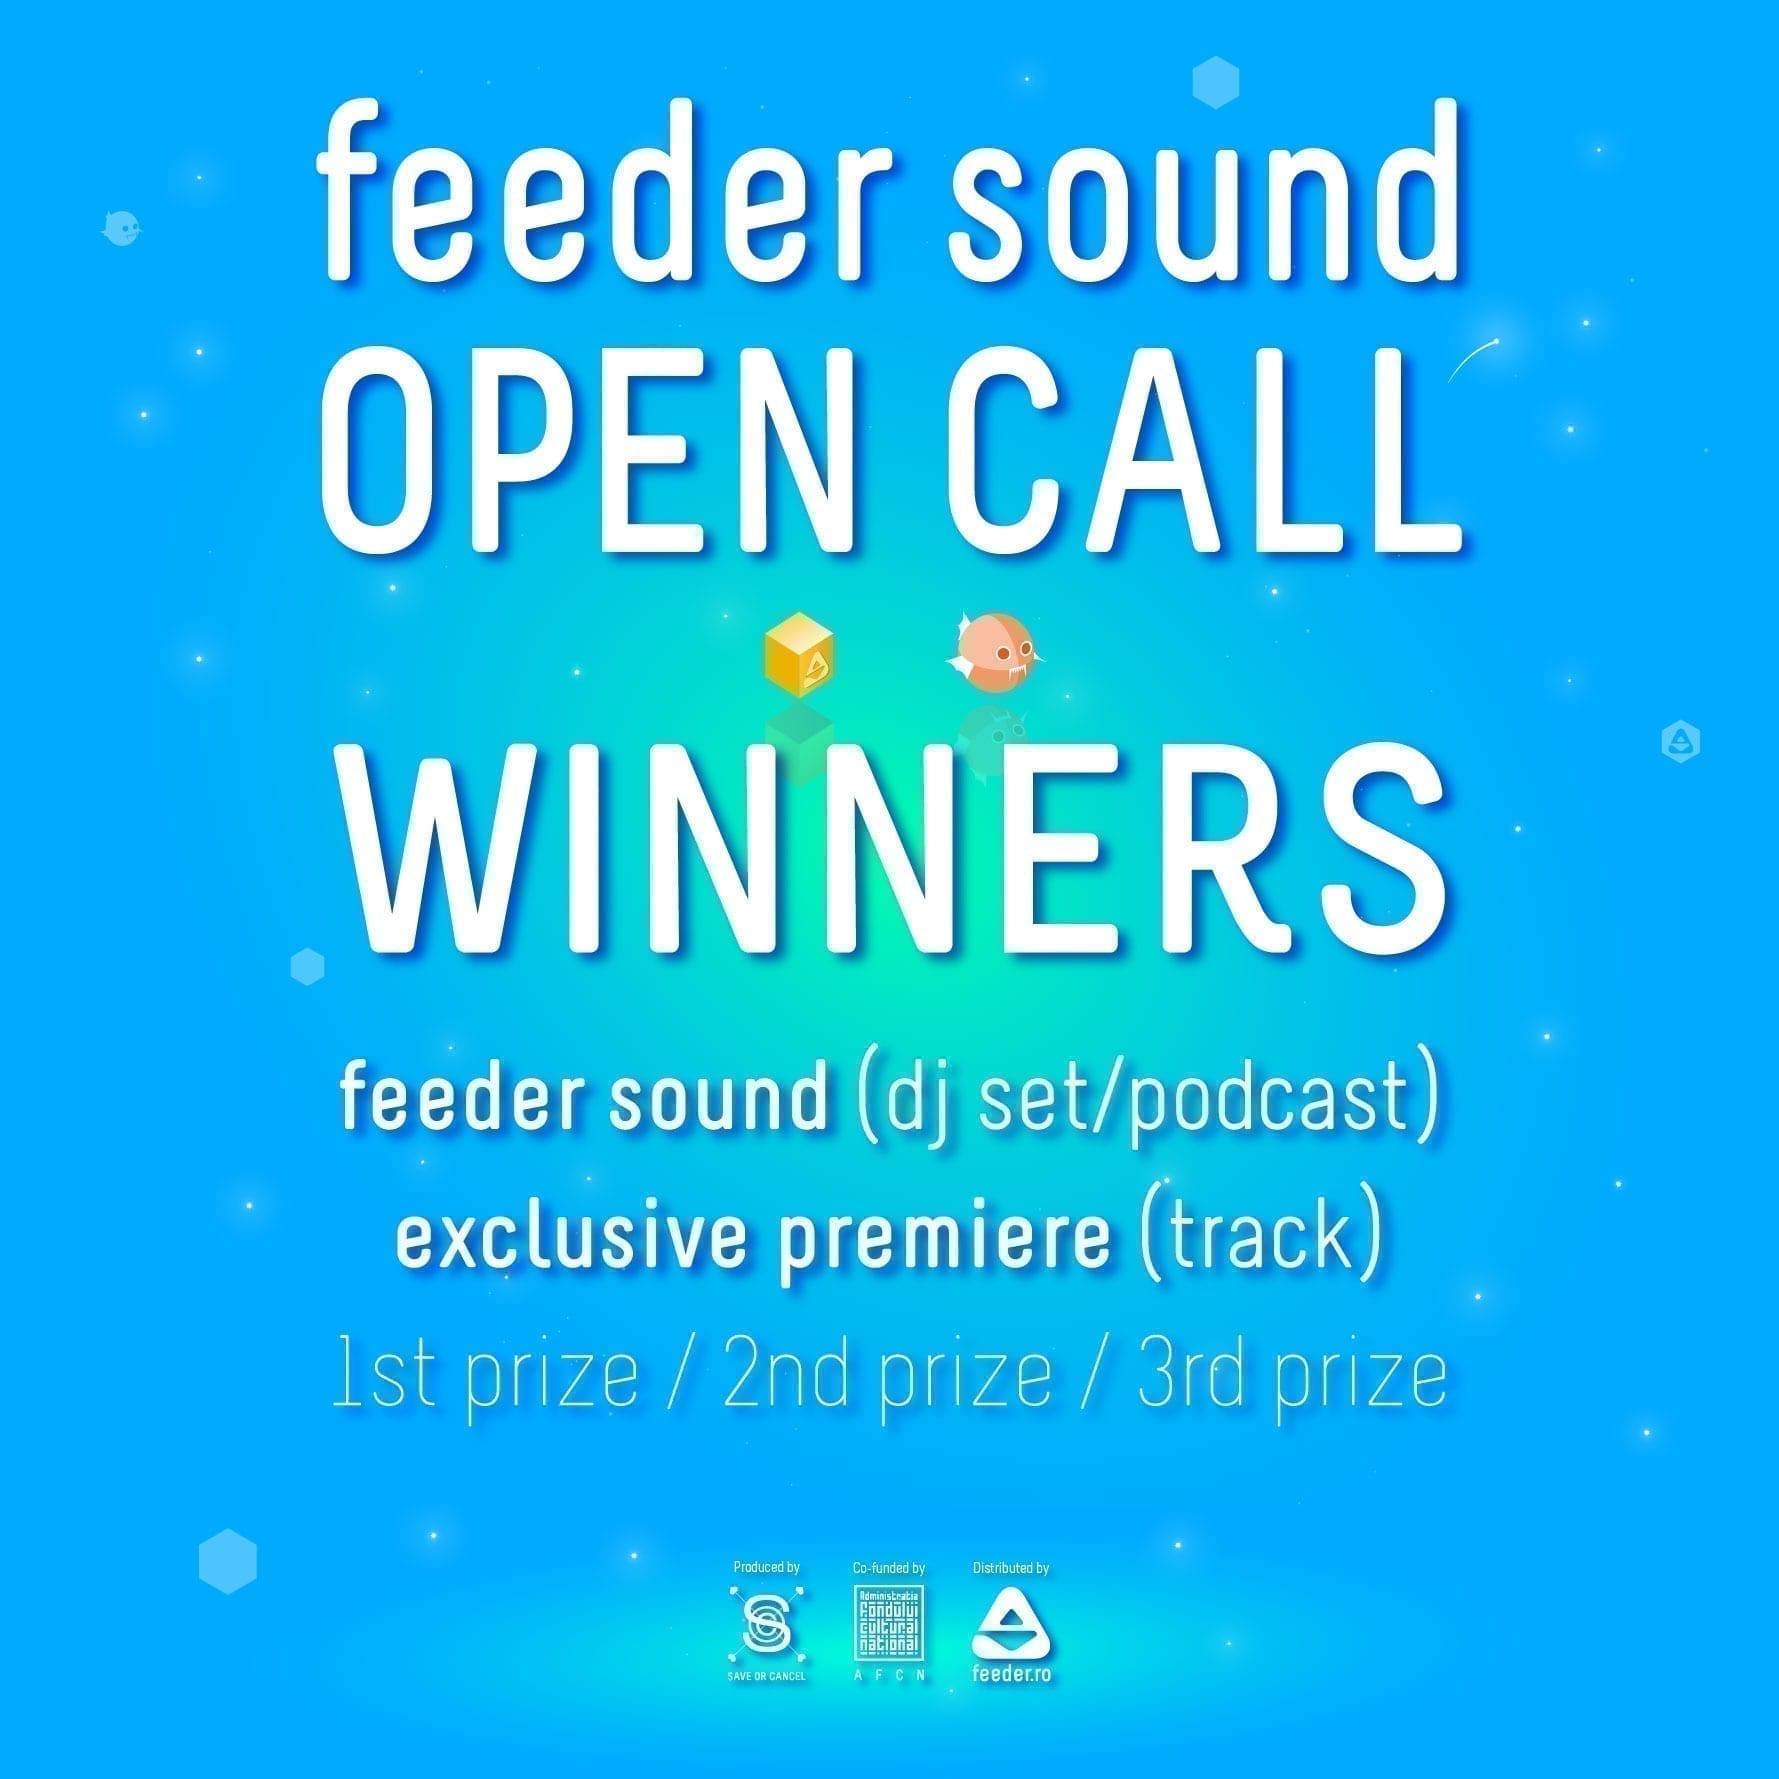 feeder sound open call WINNERS